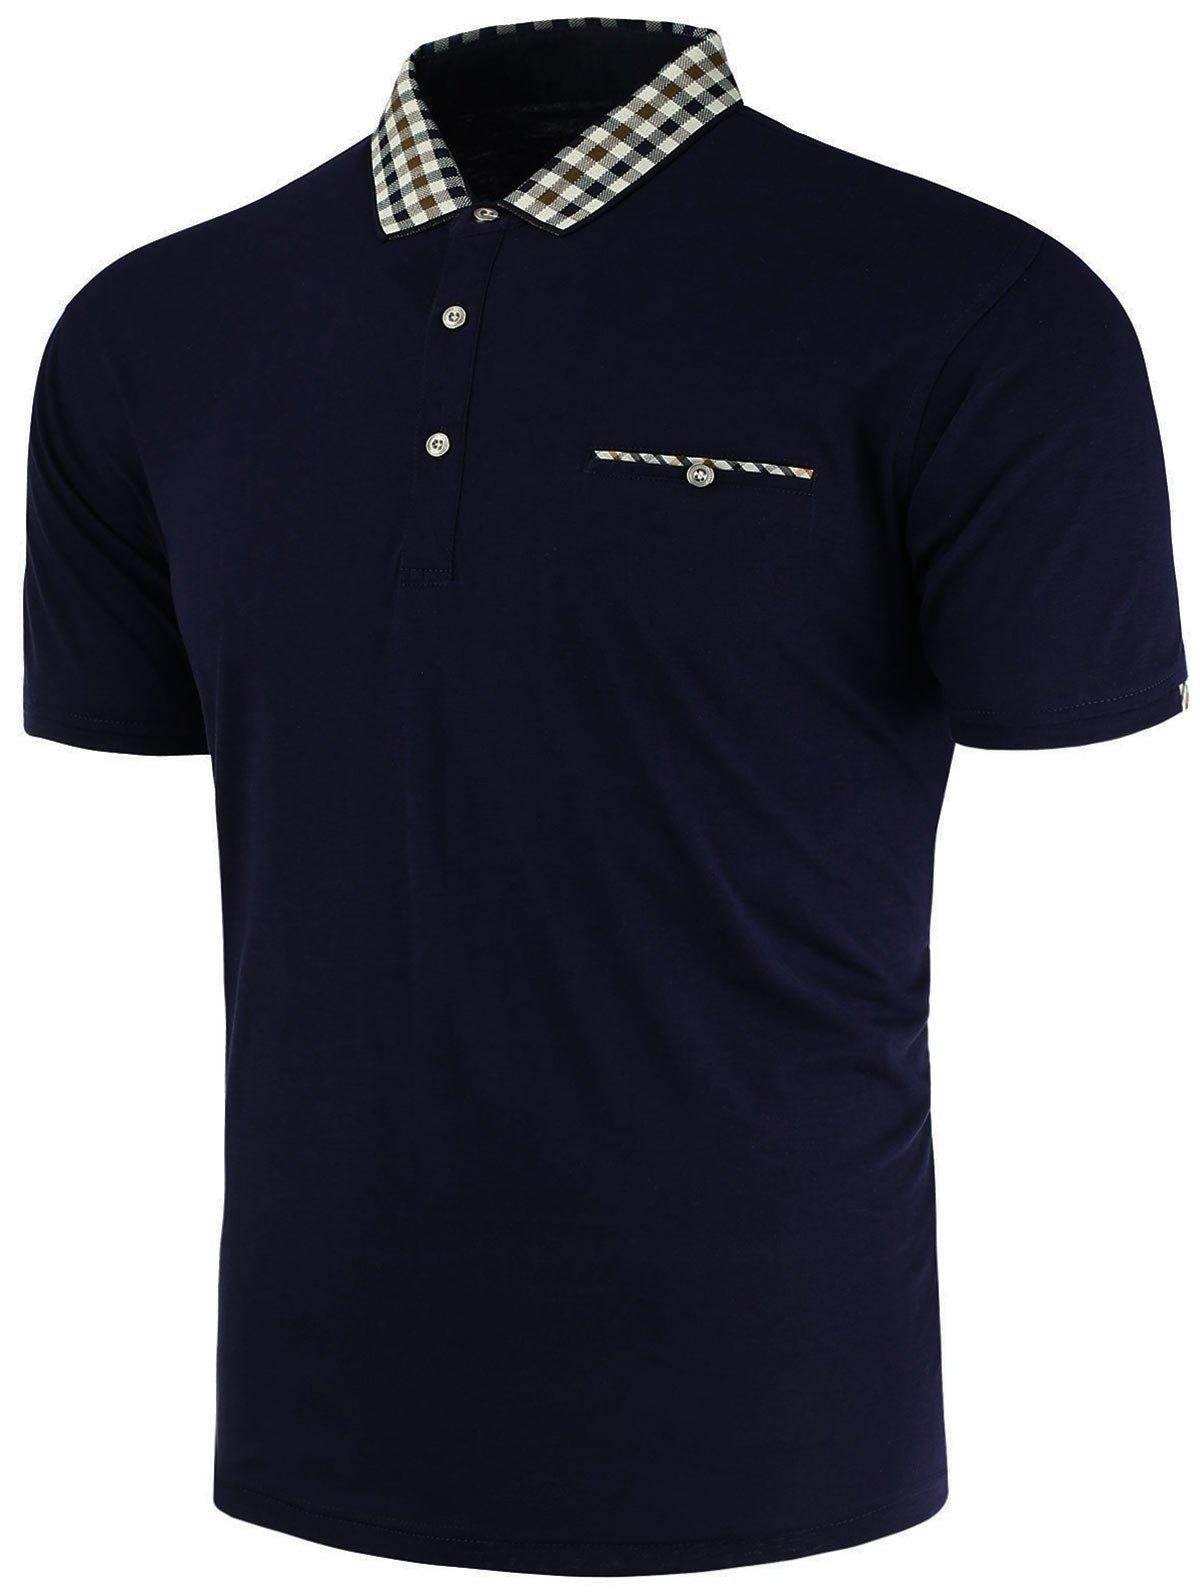 2018 plaid trim pocket polo t shirt cadetblue xl in t for Polo t shirts with pocket online